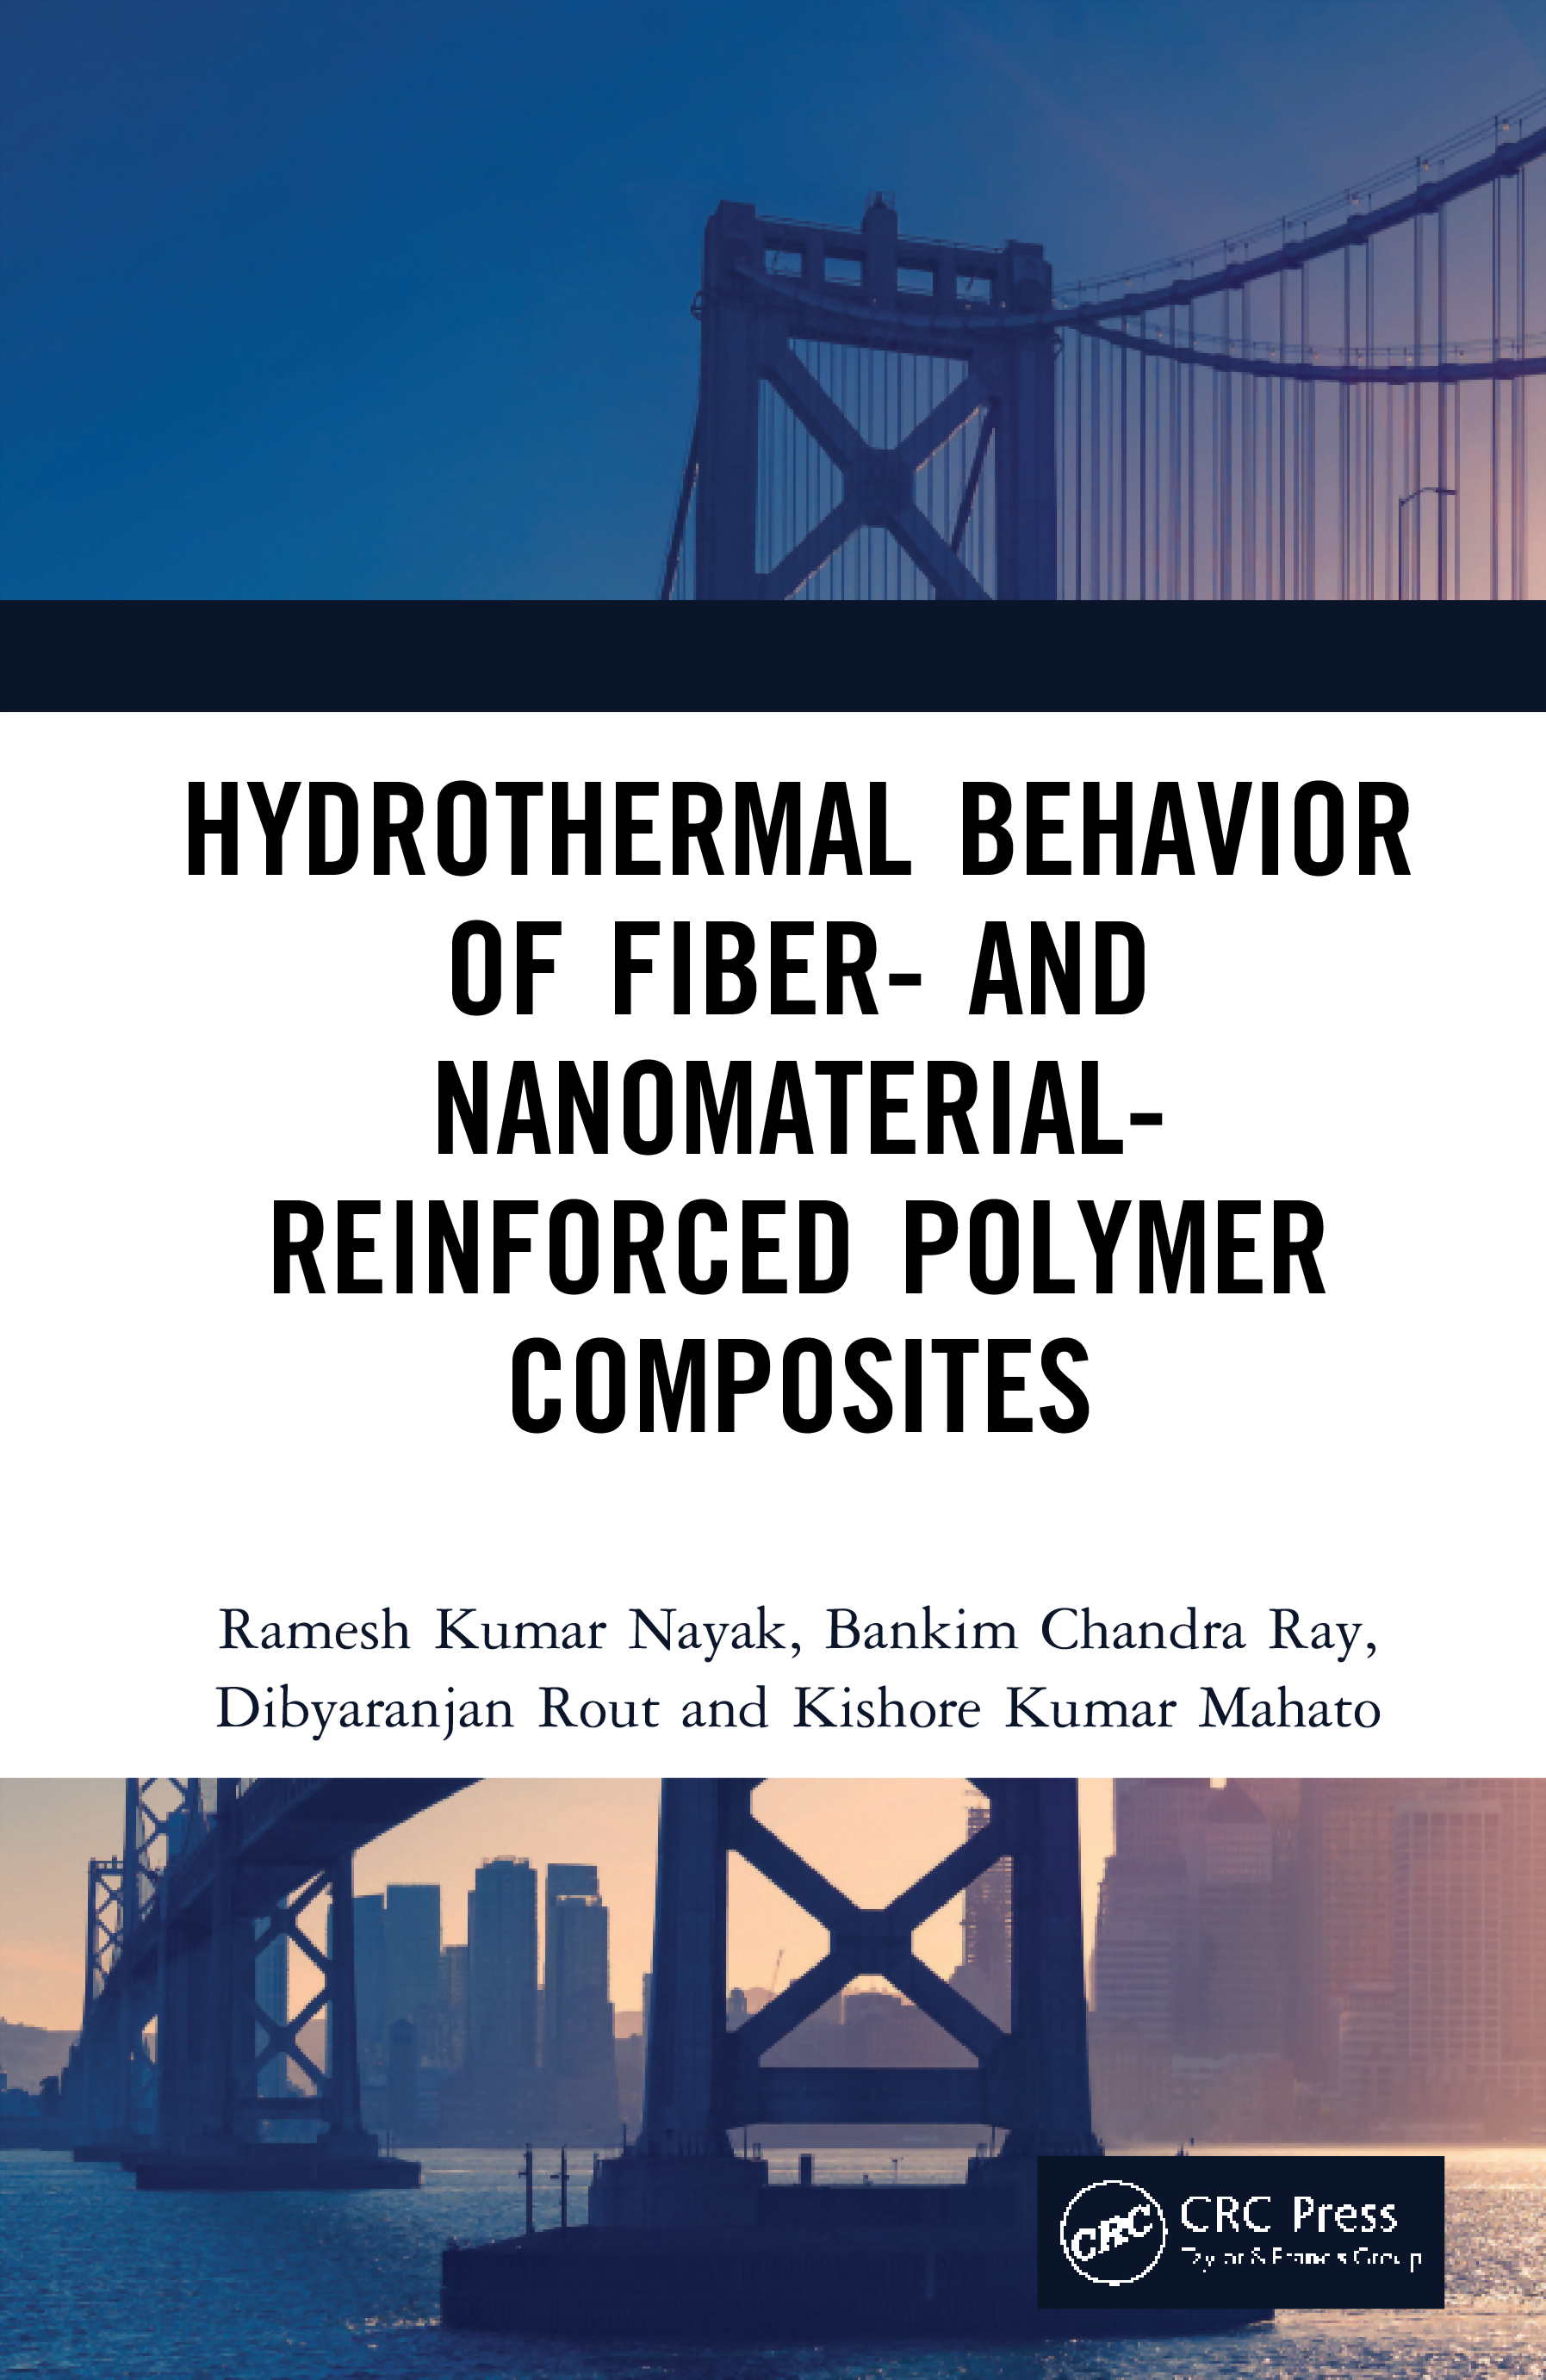 Hydrothermal Behavior of Fiber- and Nanomaterial-Reinforced Polymer Composites book cover